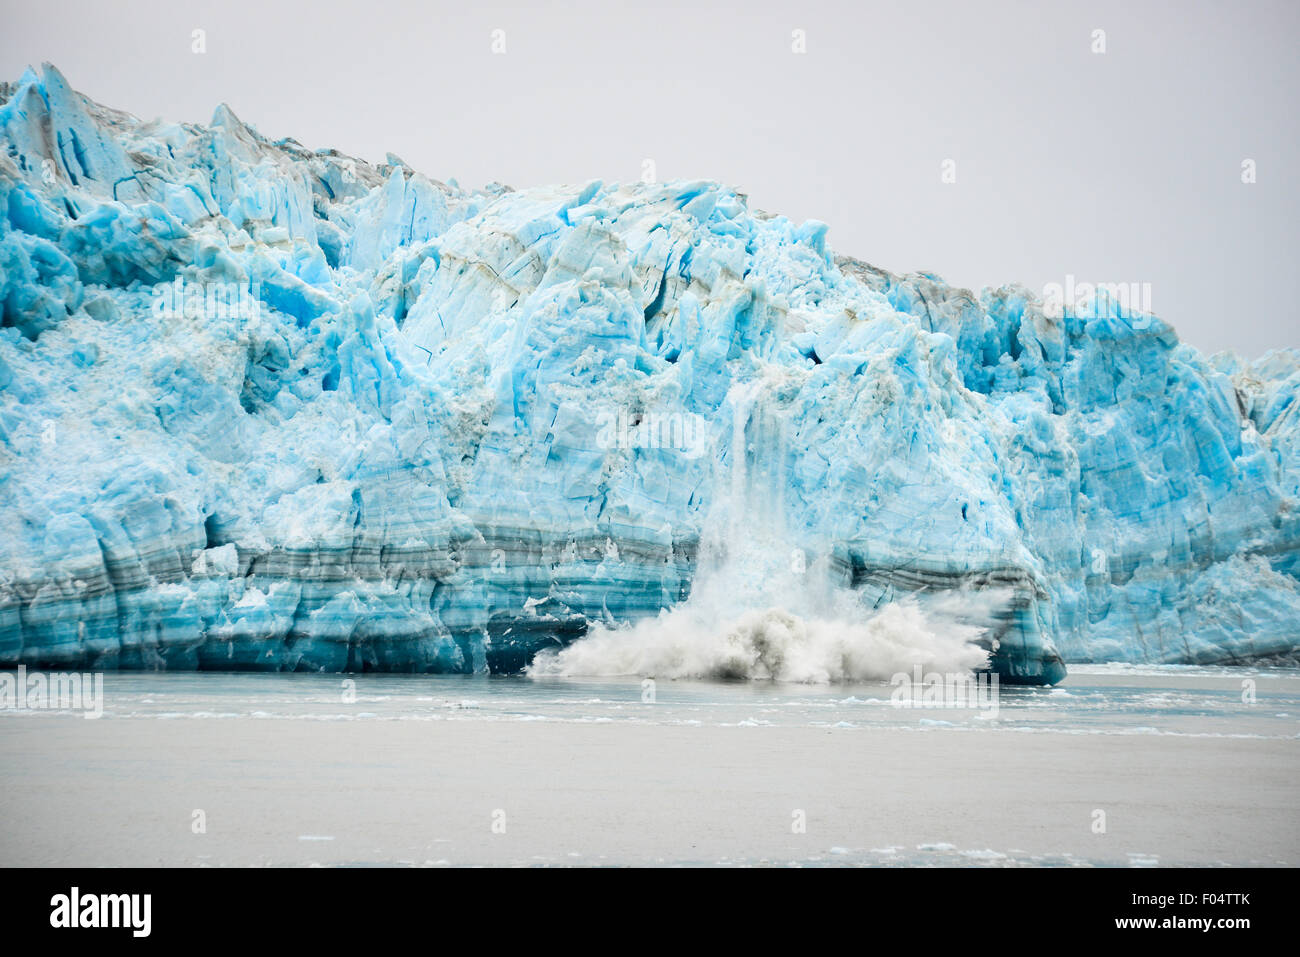 Hubbard Glacier Calving - Natural Phenomenon - Stock Image